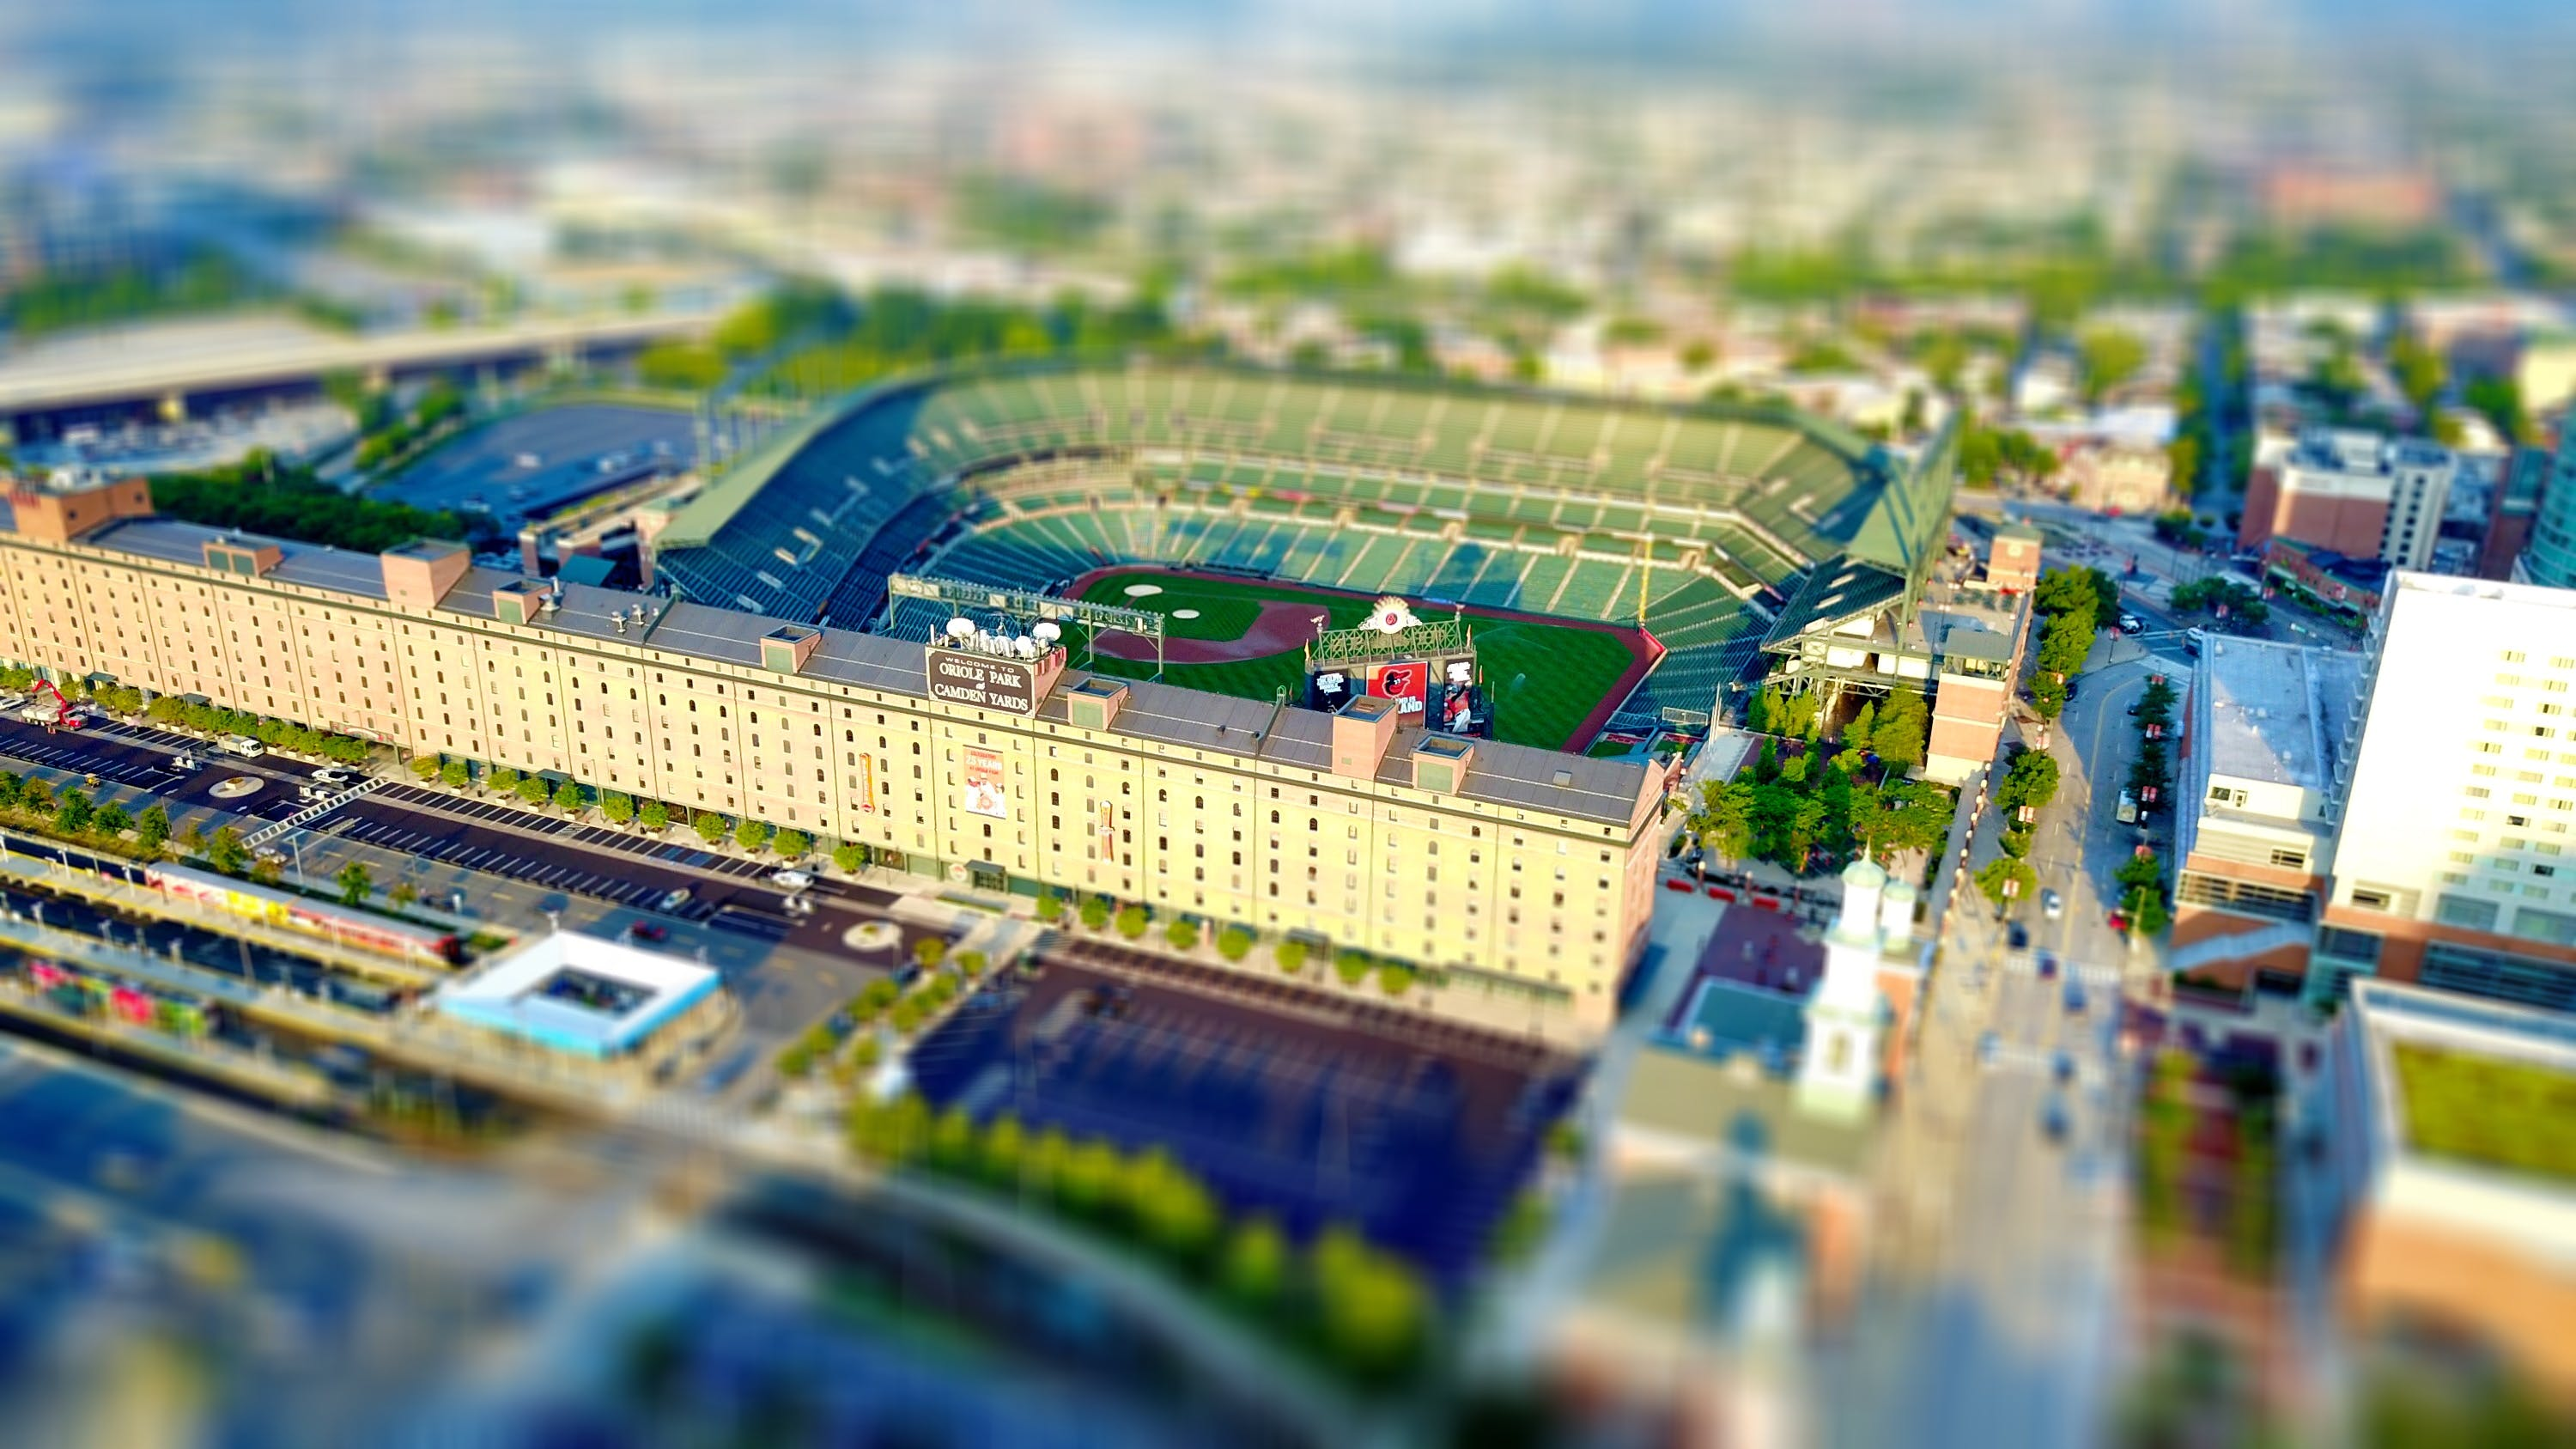 Bird's Eye View Photography of Stadium